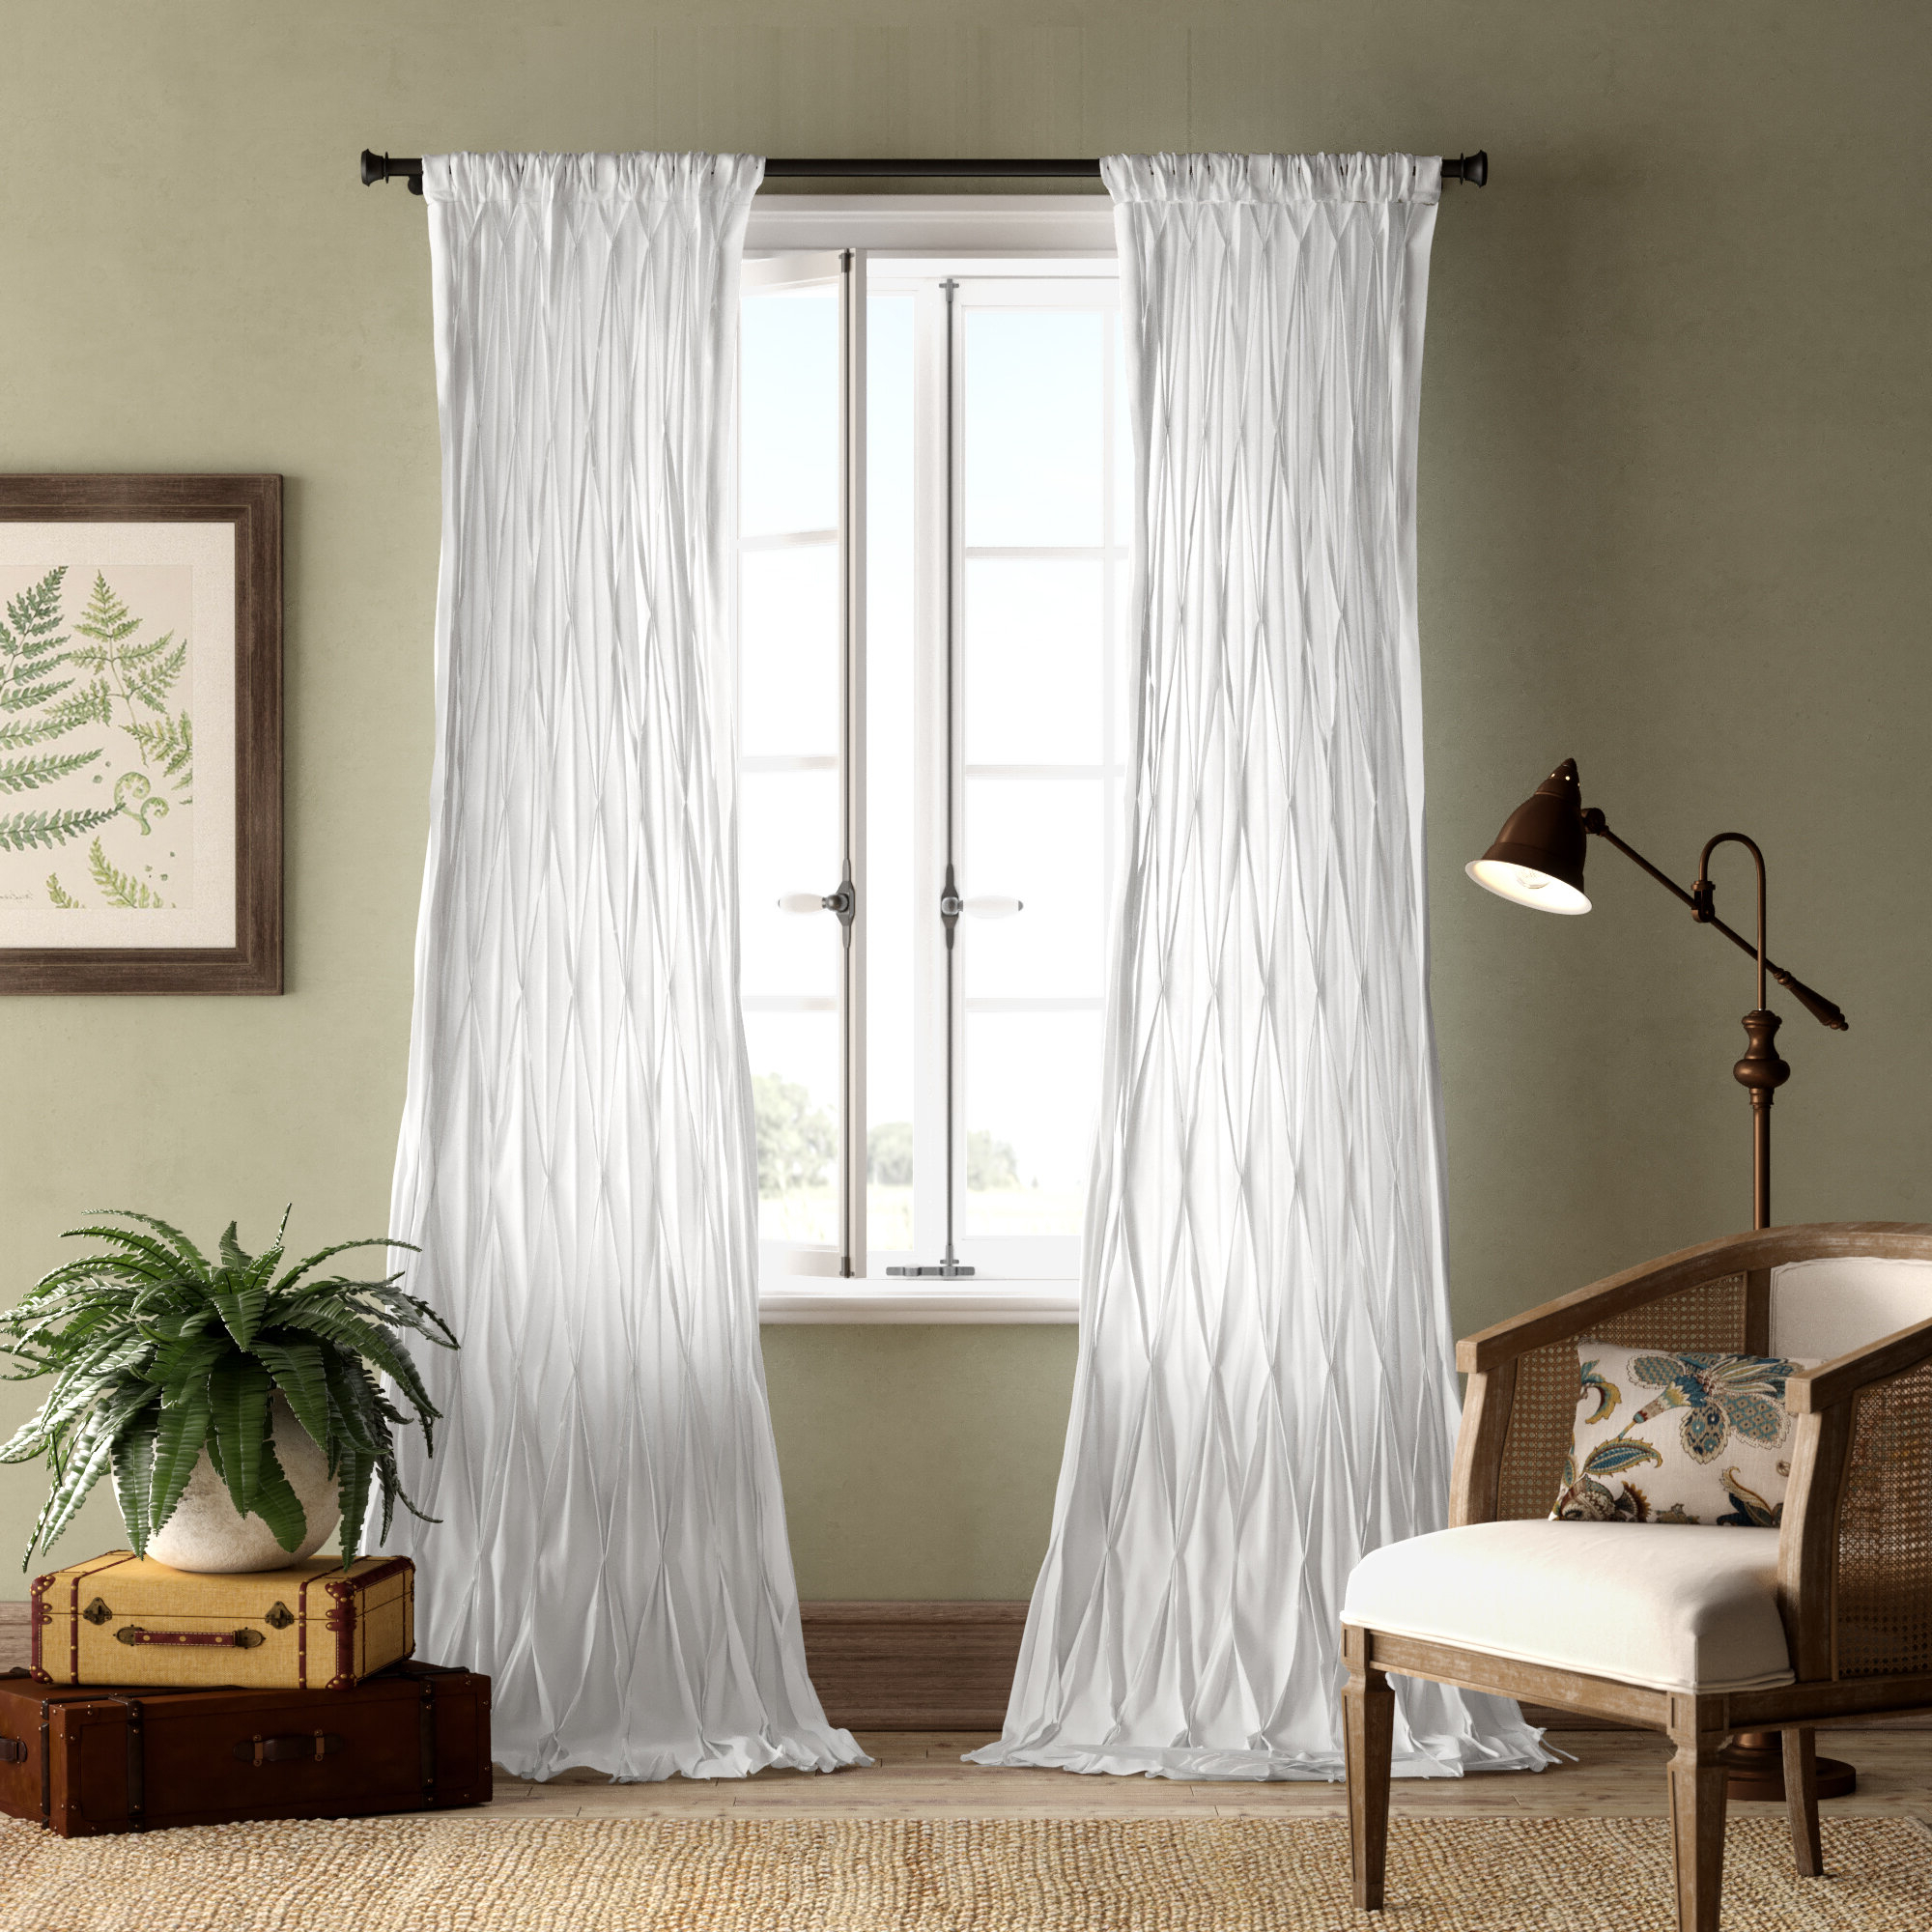 2021 Casimiro Cotton Voile Solid Sheer Pinch Pleat Single Curtain Panel Intended For Solid Cotton Curtain Panels (View 14 of 20)